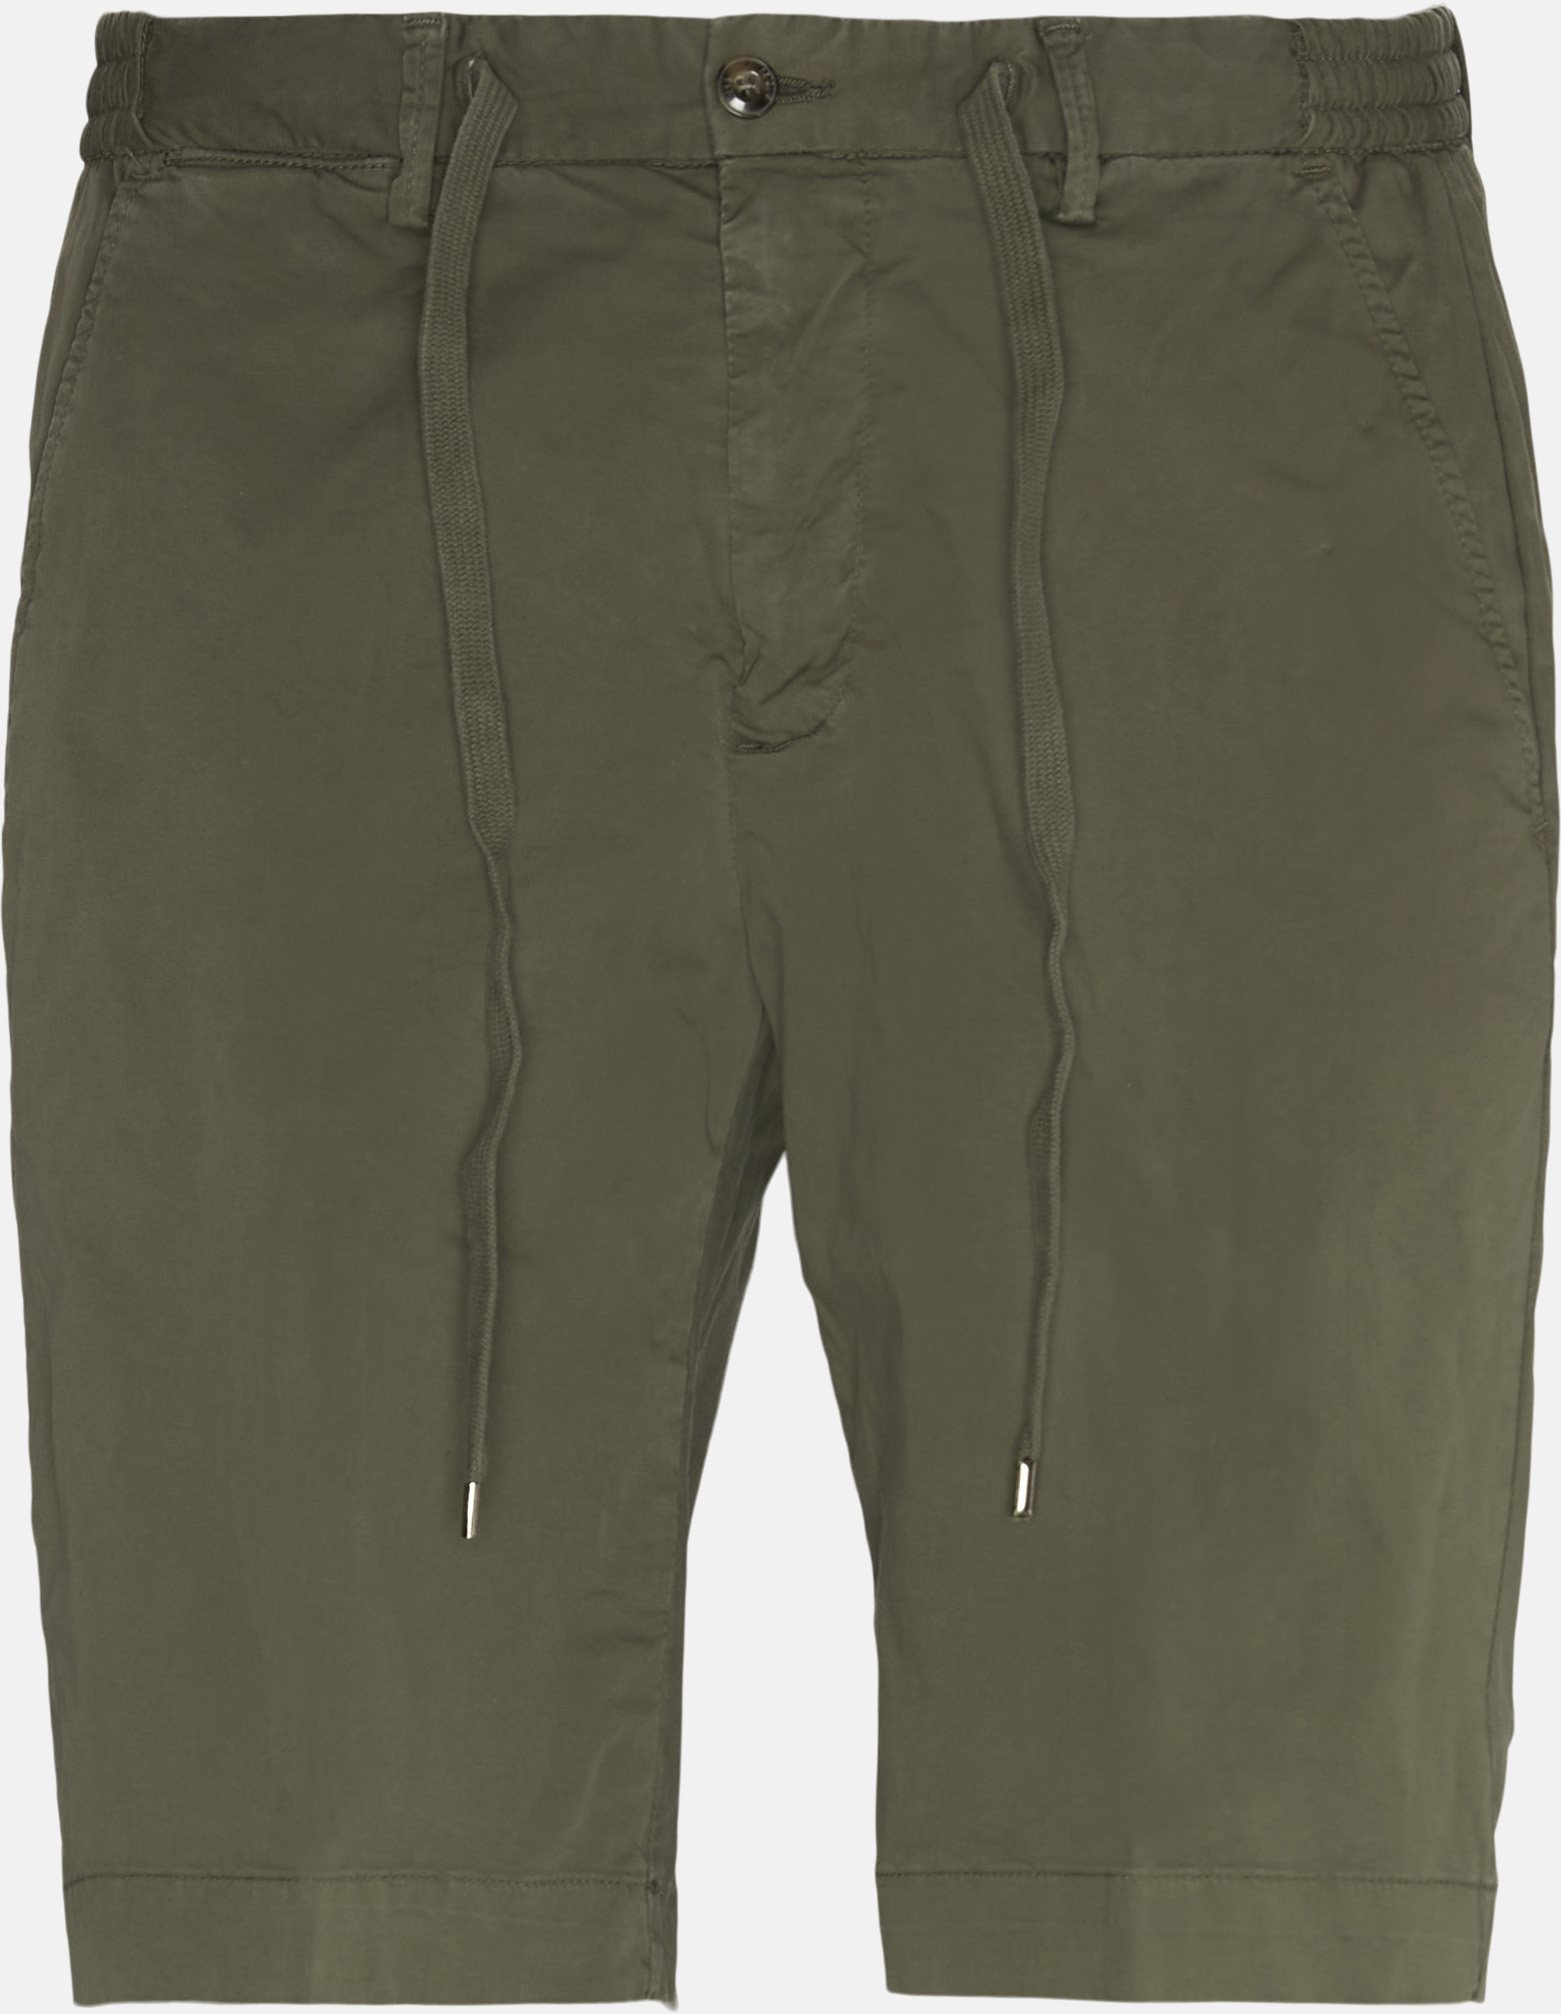 Malibu Shorts - Shorts - Regular - Army